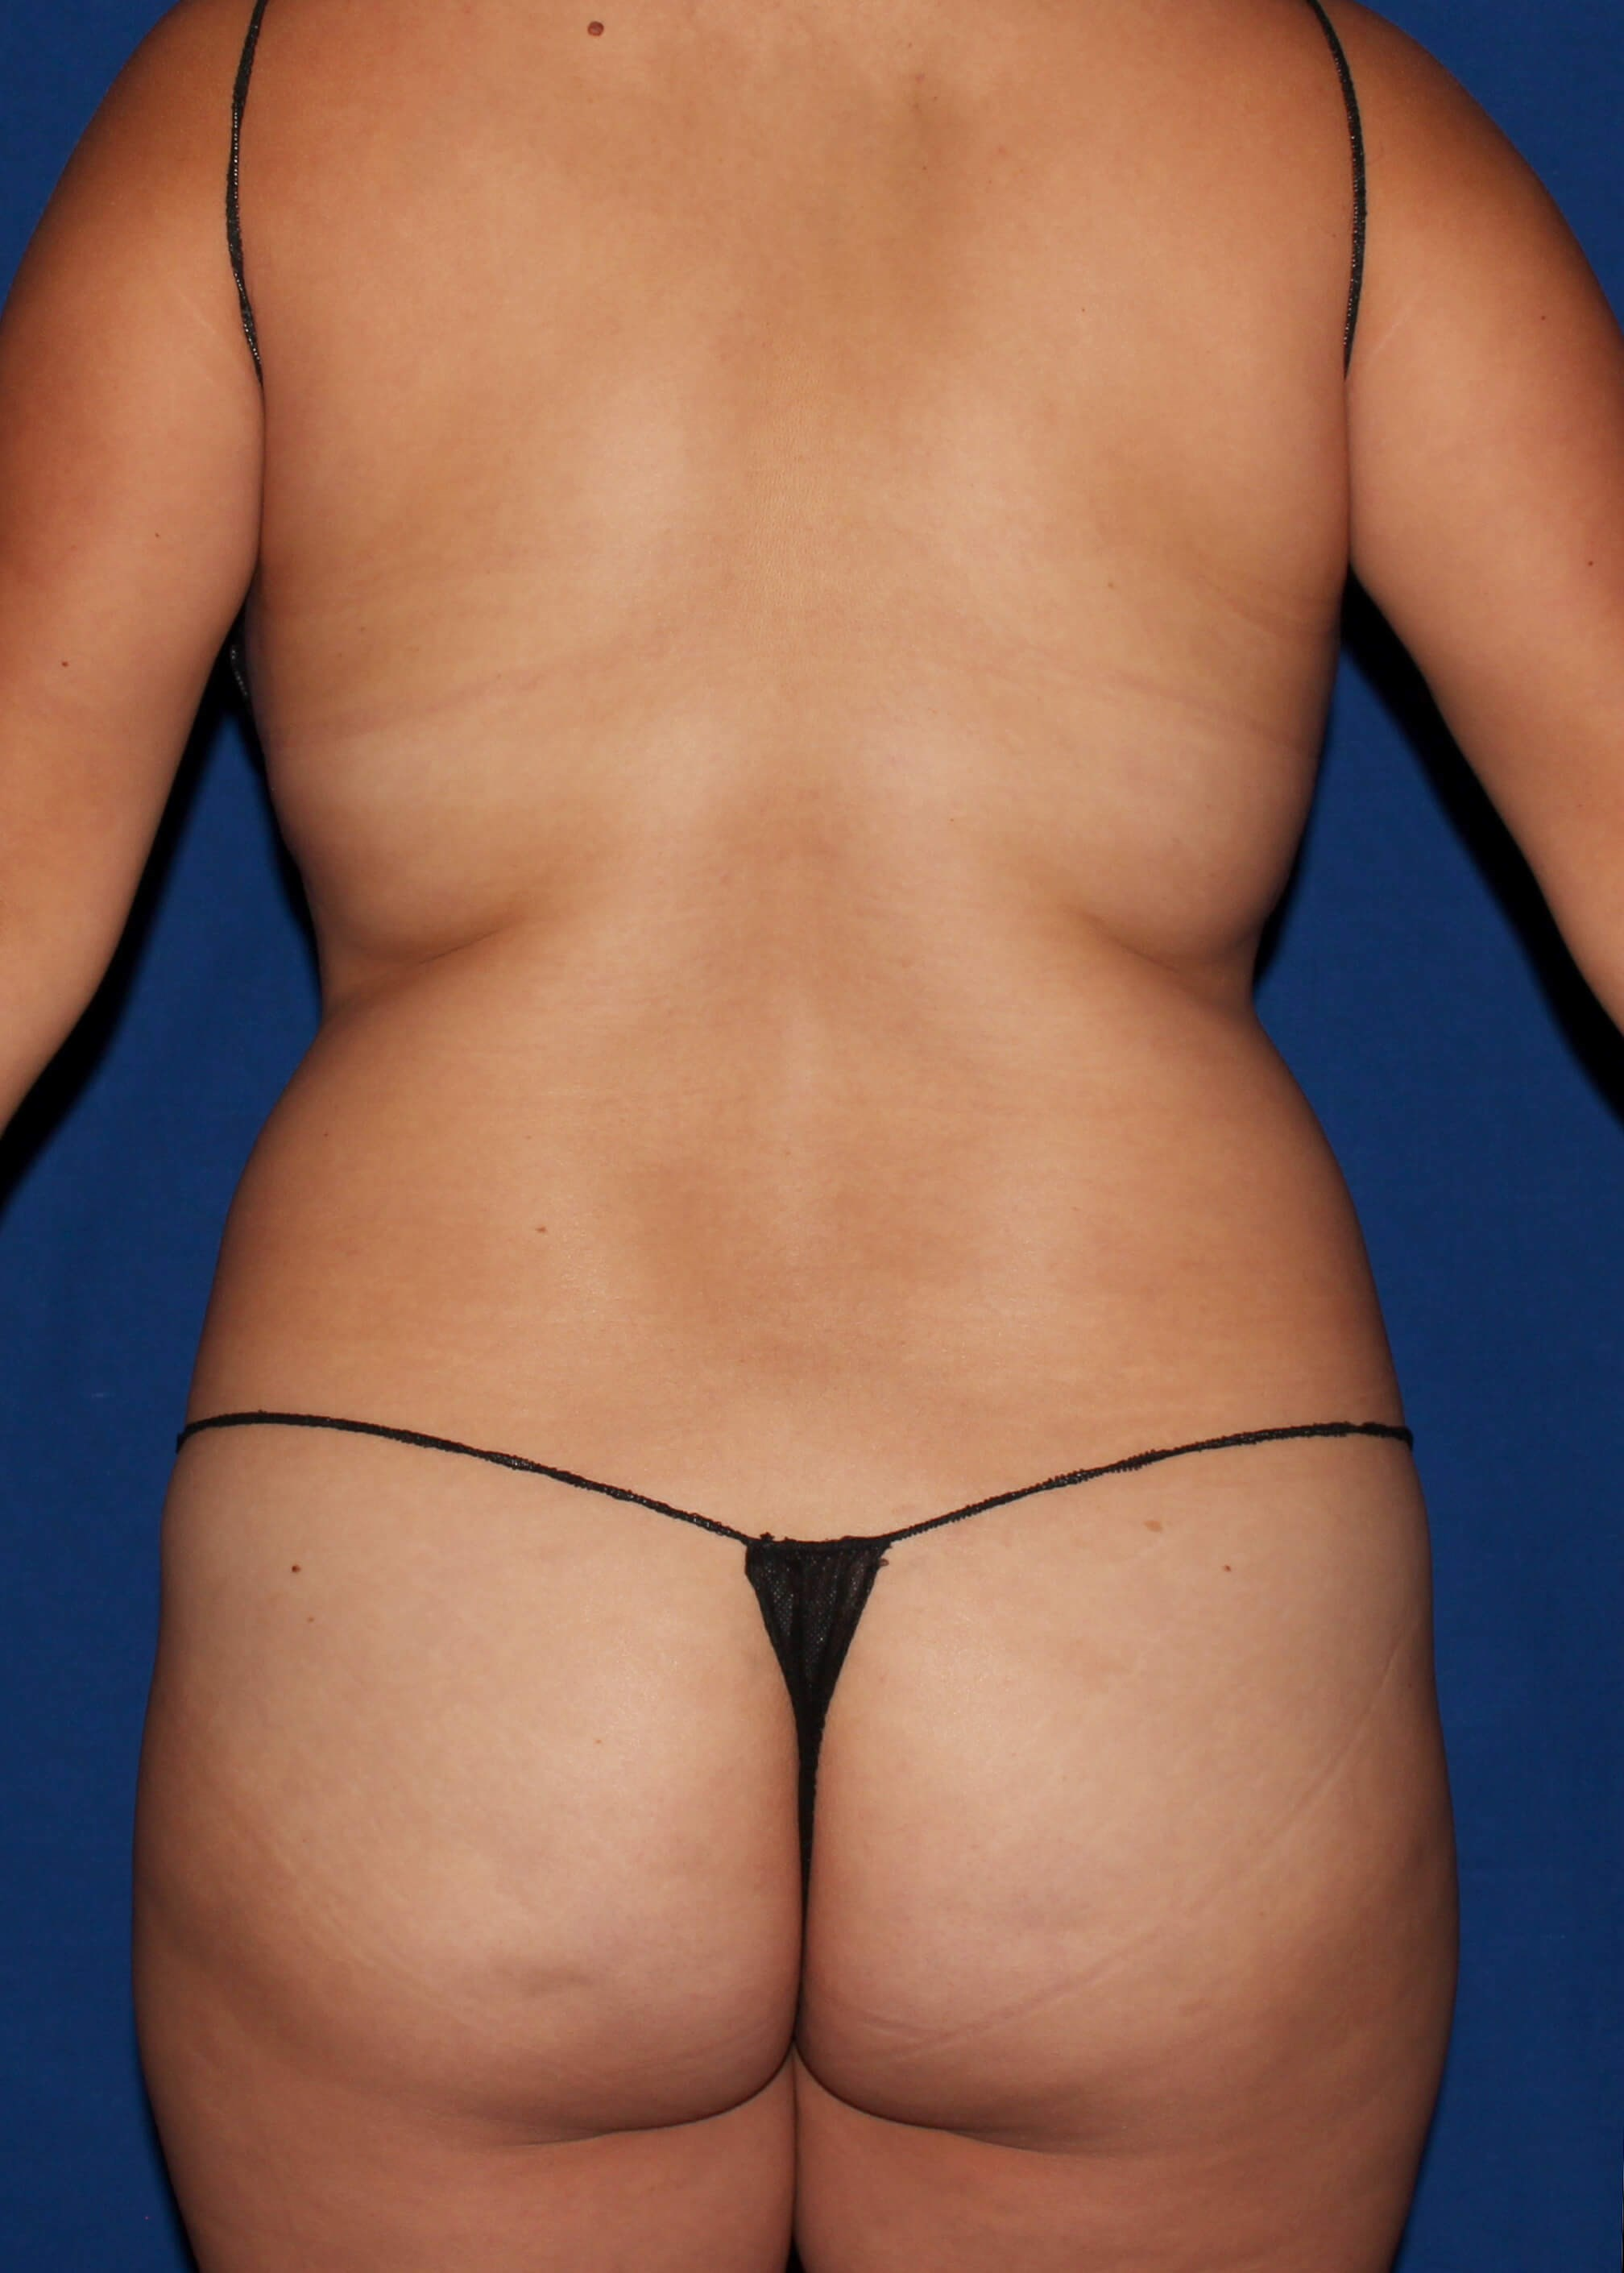 Full Torso Liposuction Before - BACK VIEW